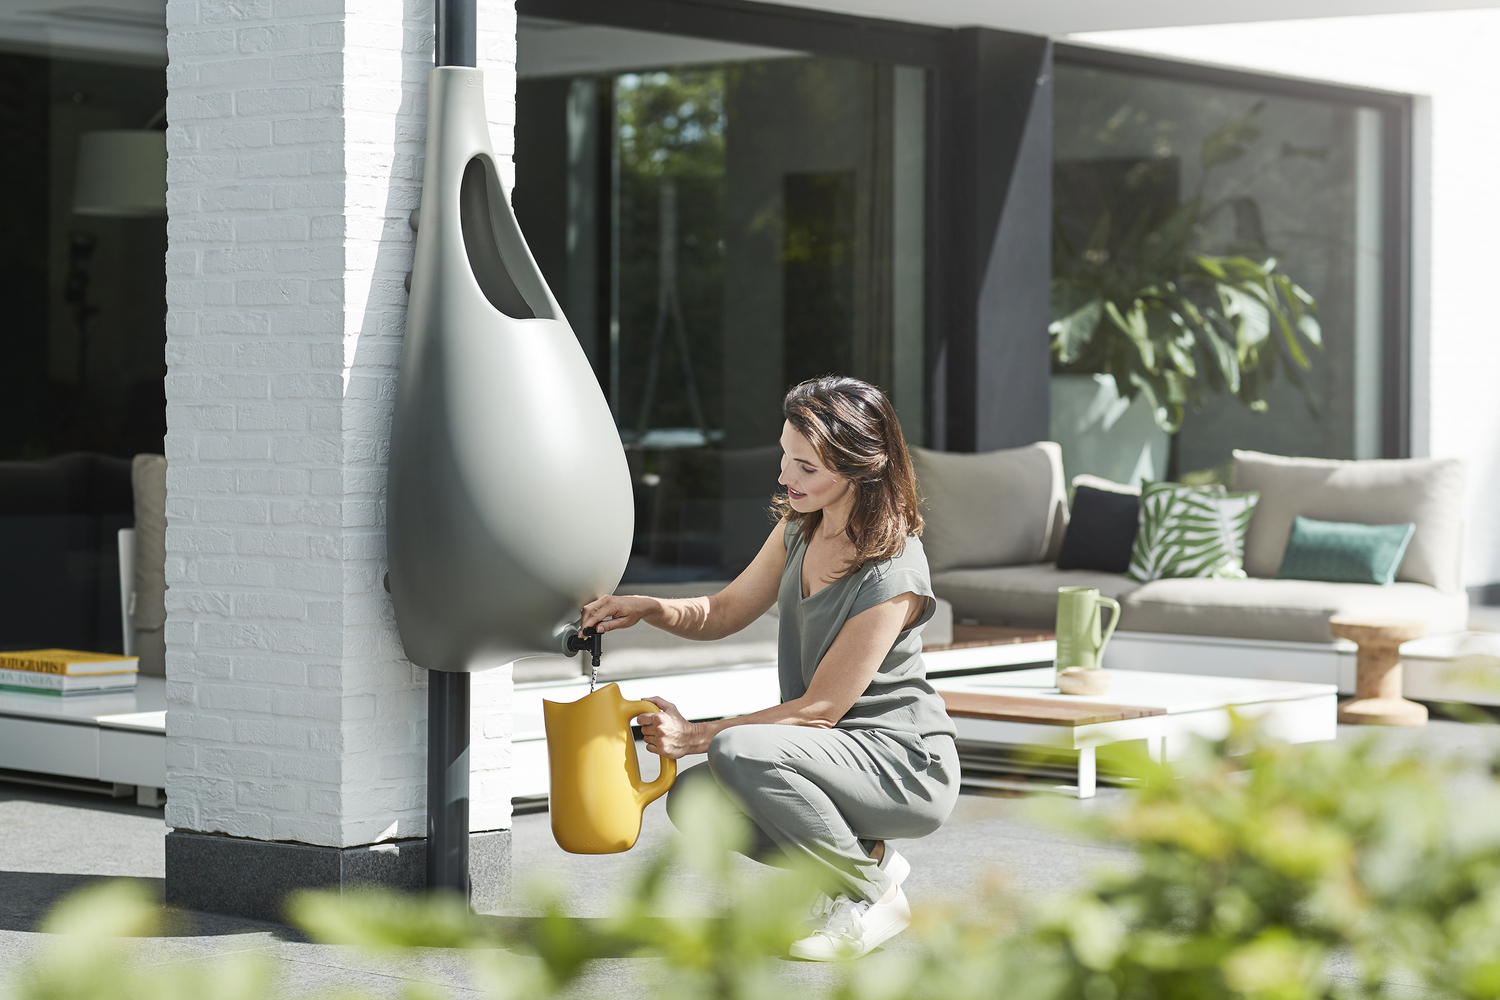 Rainwater harvesting is easy with 'Raindrop' barrel